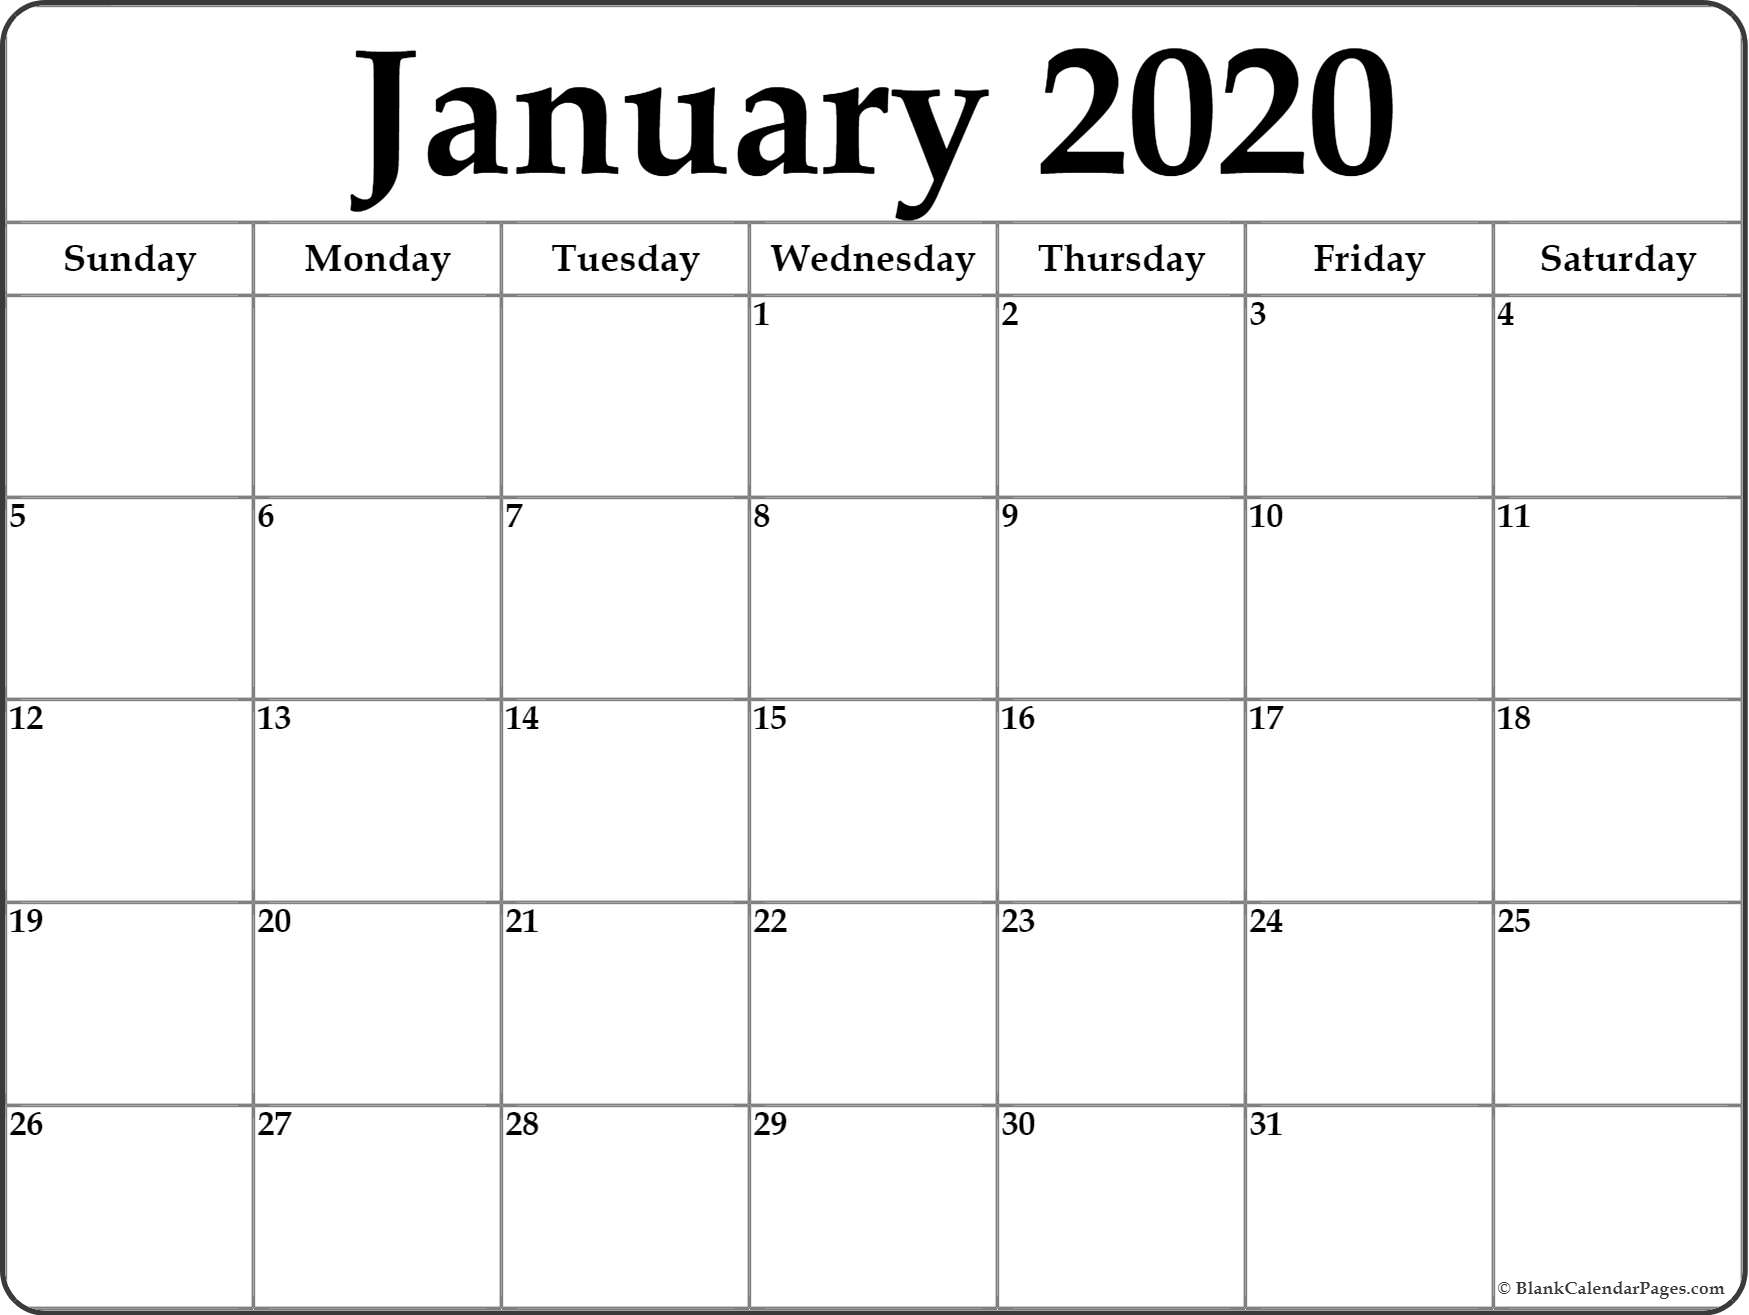 Blank Calendar 2020 Monthly - Wpa.wpart.co